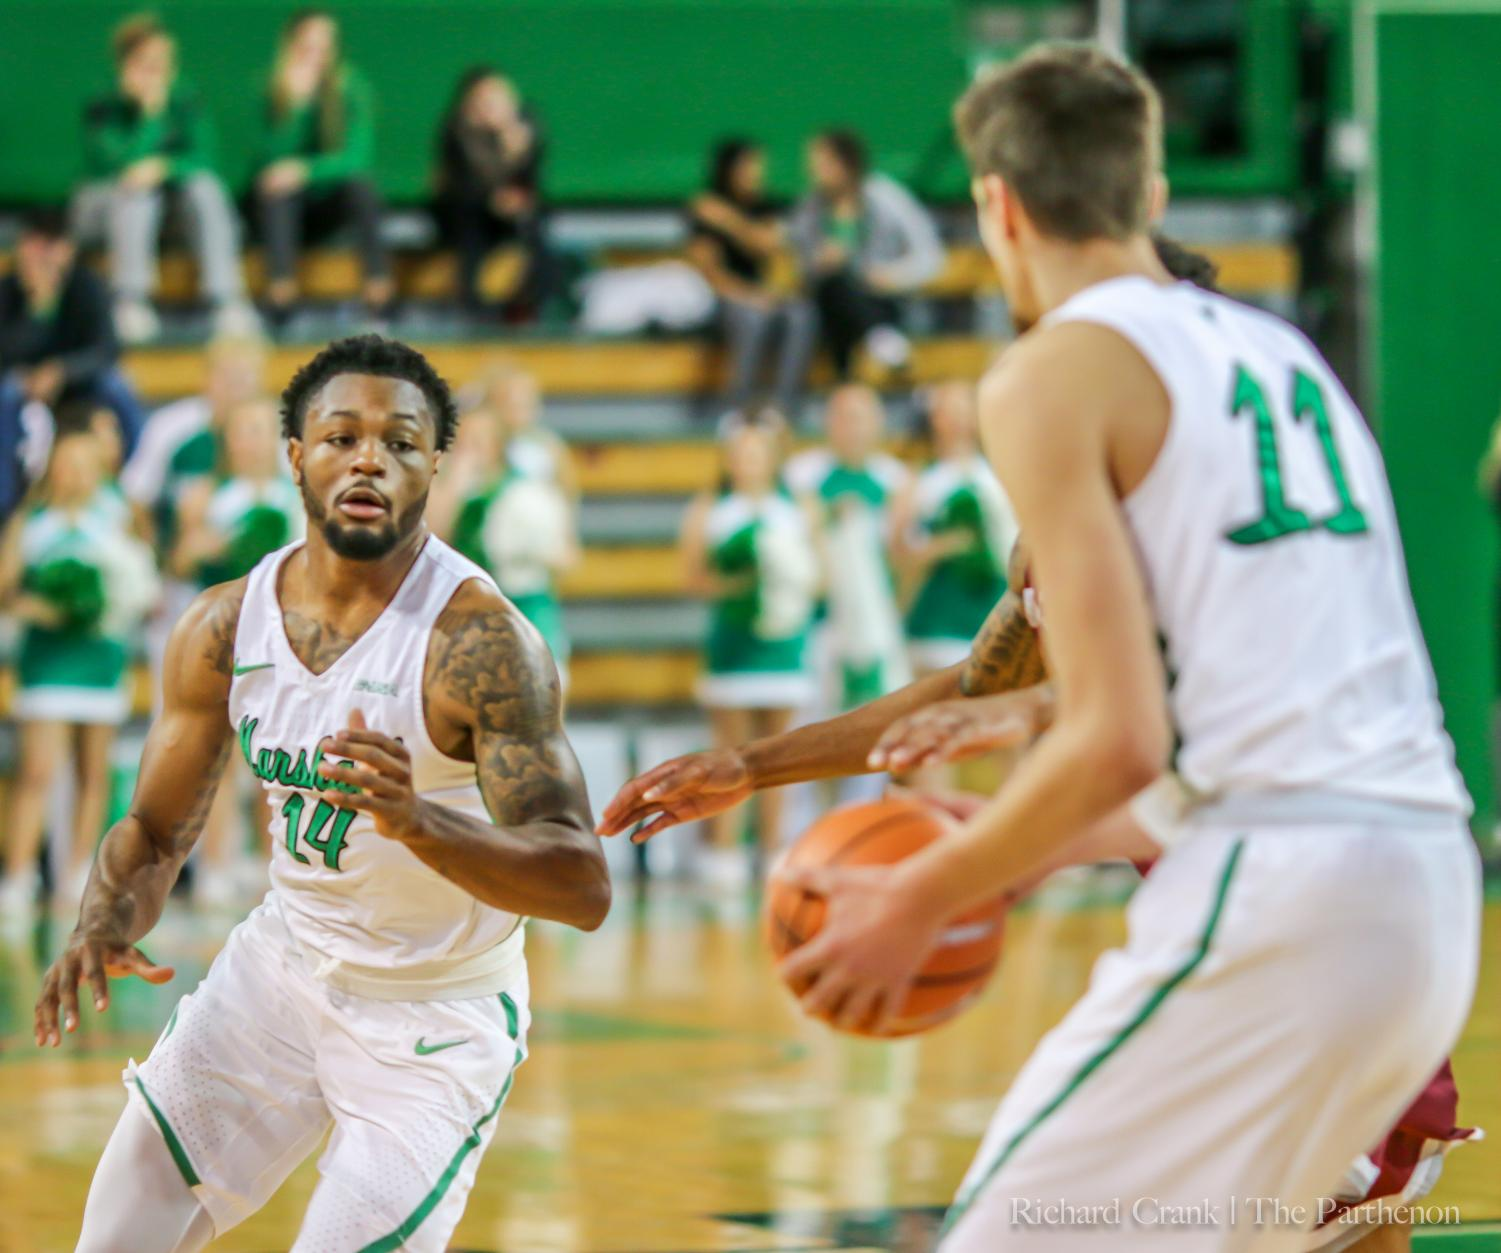 Junior guard C.J Burks prepares to reviece a pass from junior forward Ajdin Penava. Burks continues his five-game streak of leading the Herd in total points scored, as he comes off a 29-point scoring performance against  Western Kentucky.